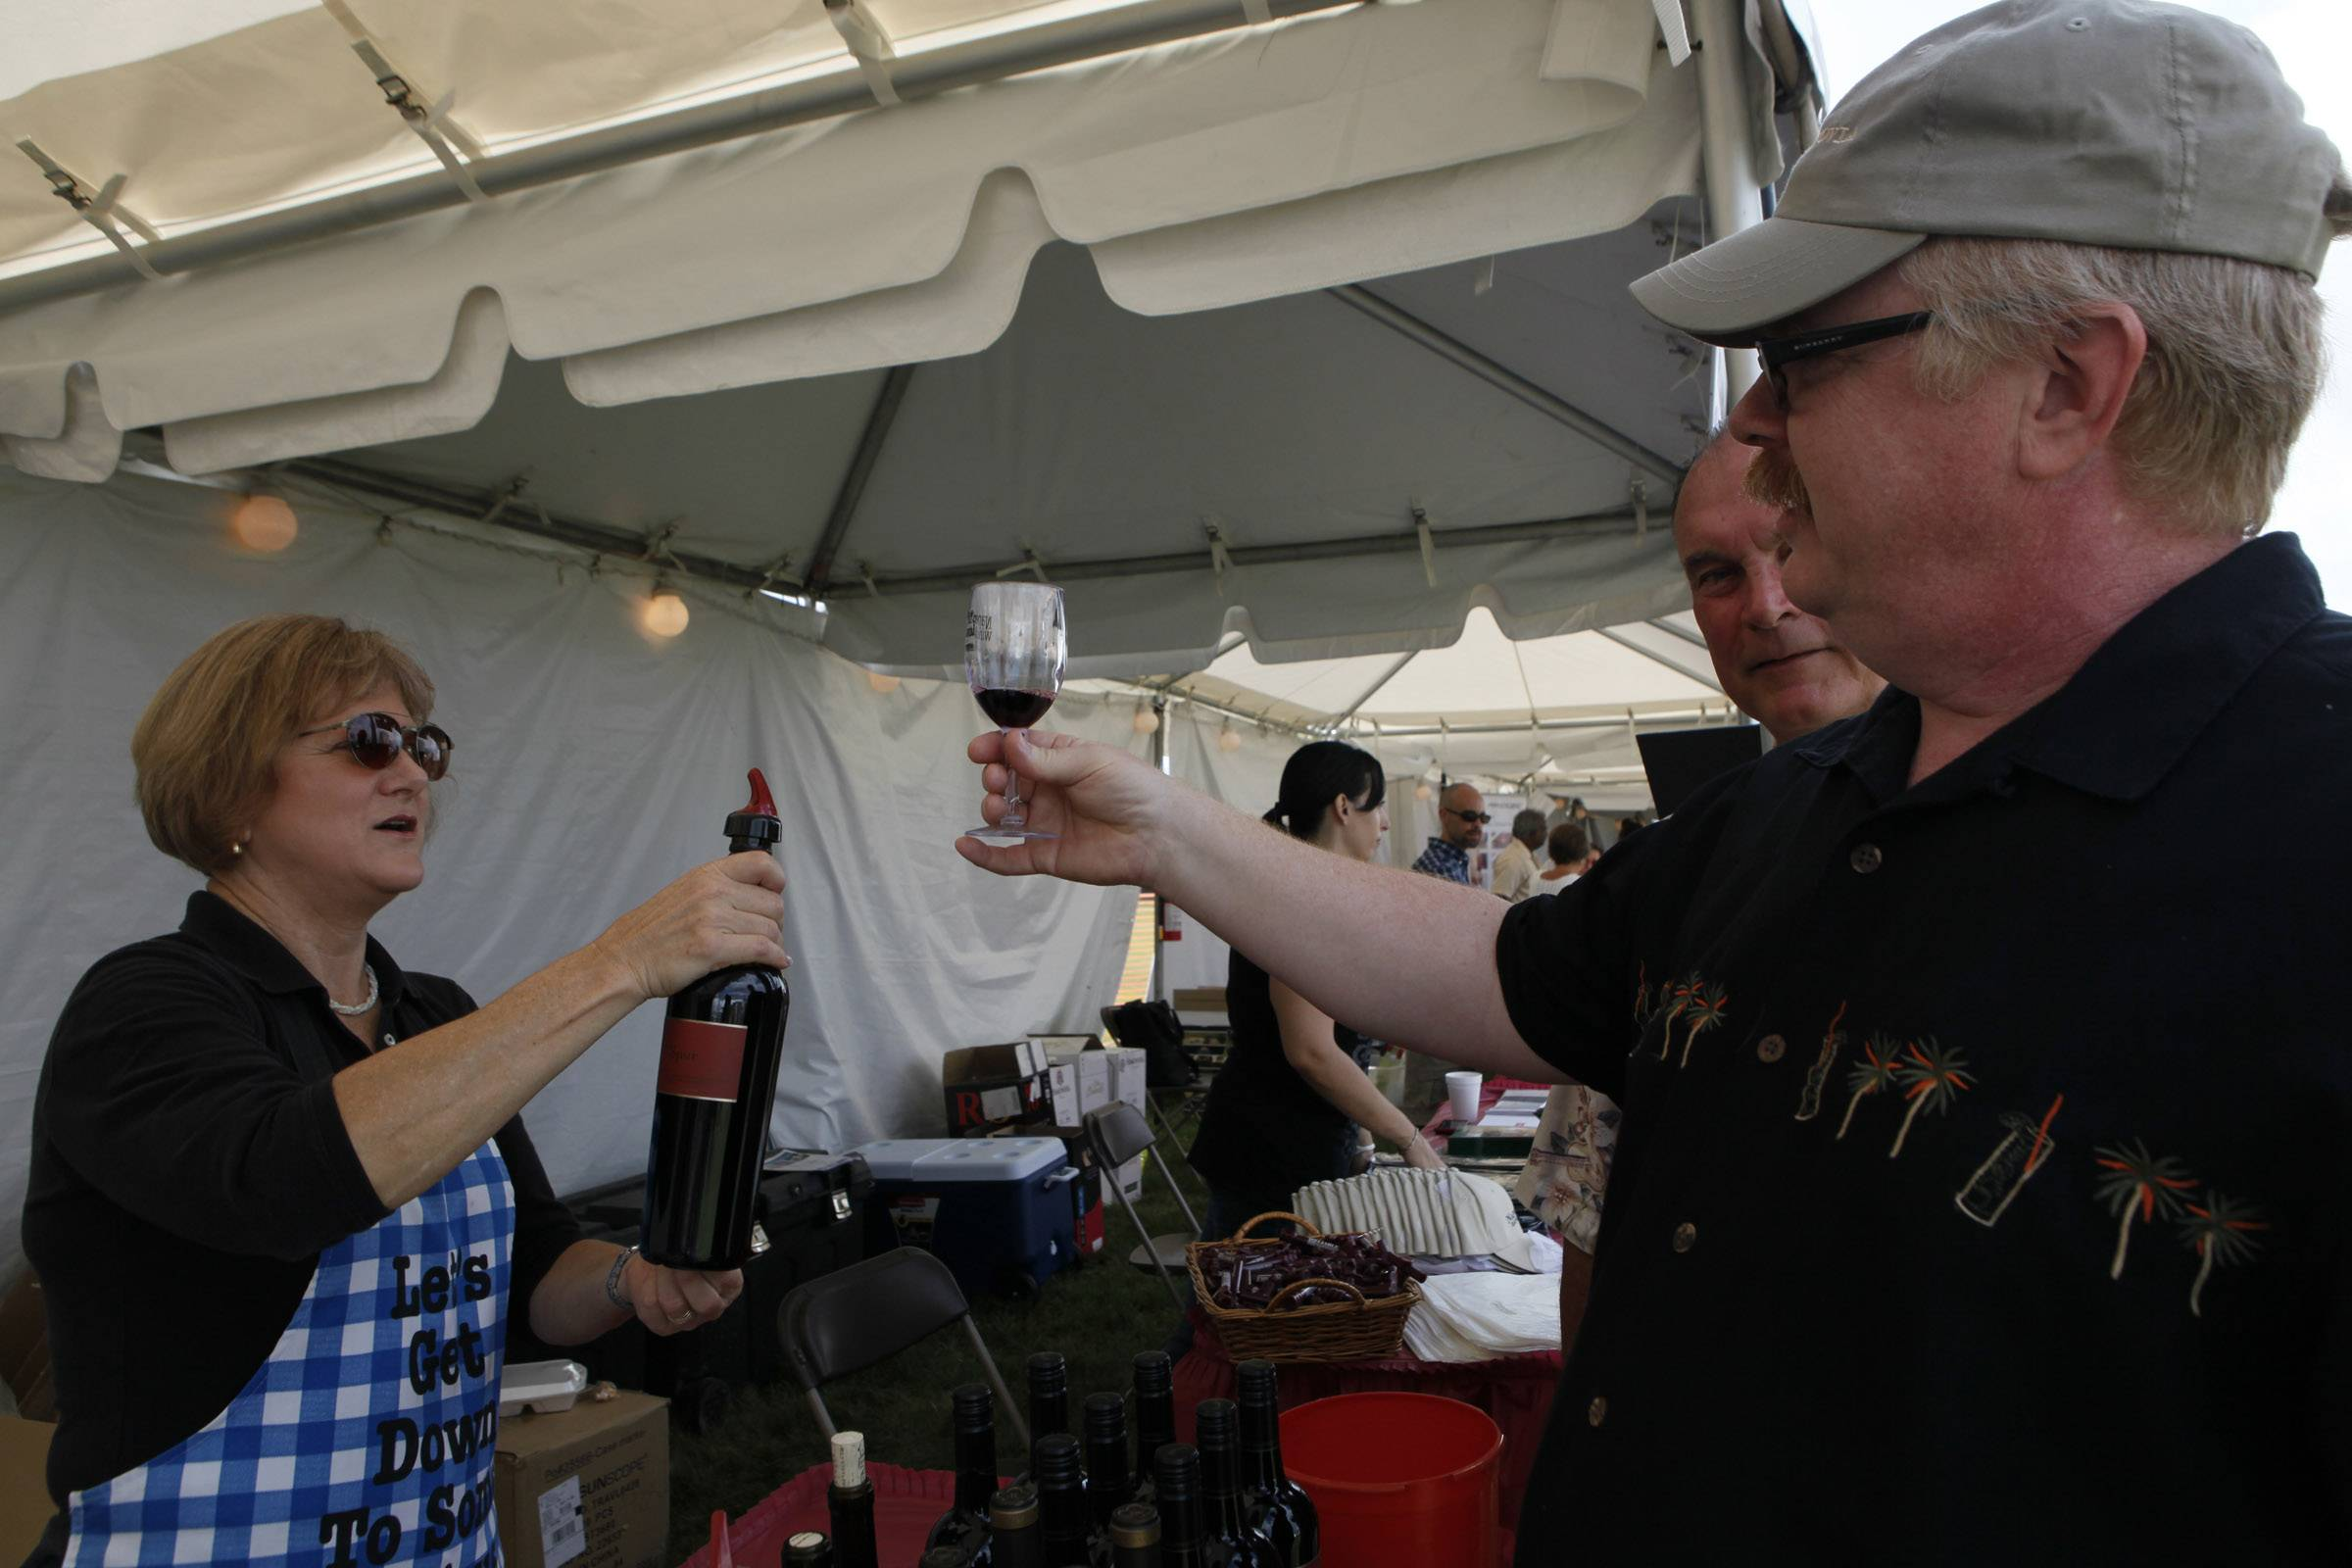 Organizers of the Naperville Wine Festival that occurs each summer are bringing the wine tasting indoors for the city's first Winter Wine Festival.